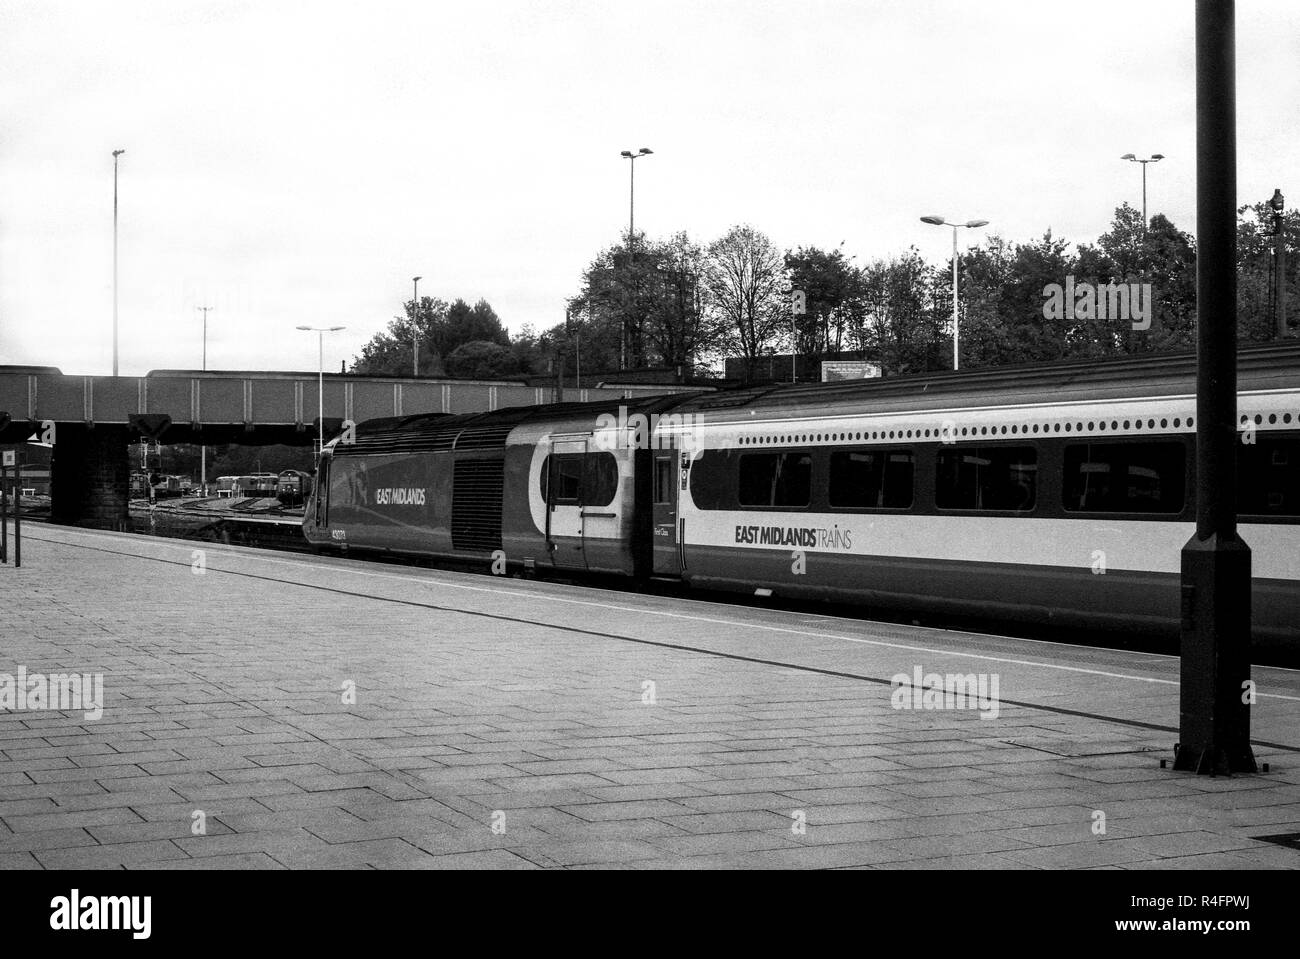 On the platform at Leicester Train Station shot using a Pentax K1000 slr - Stock Image